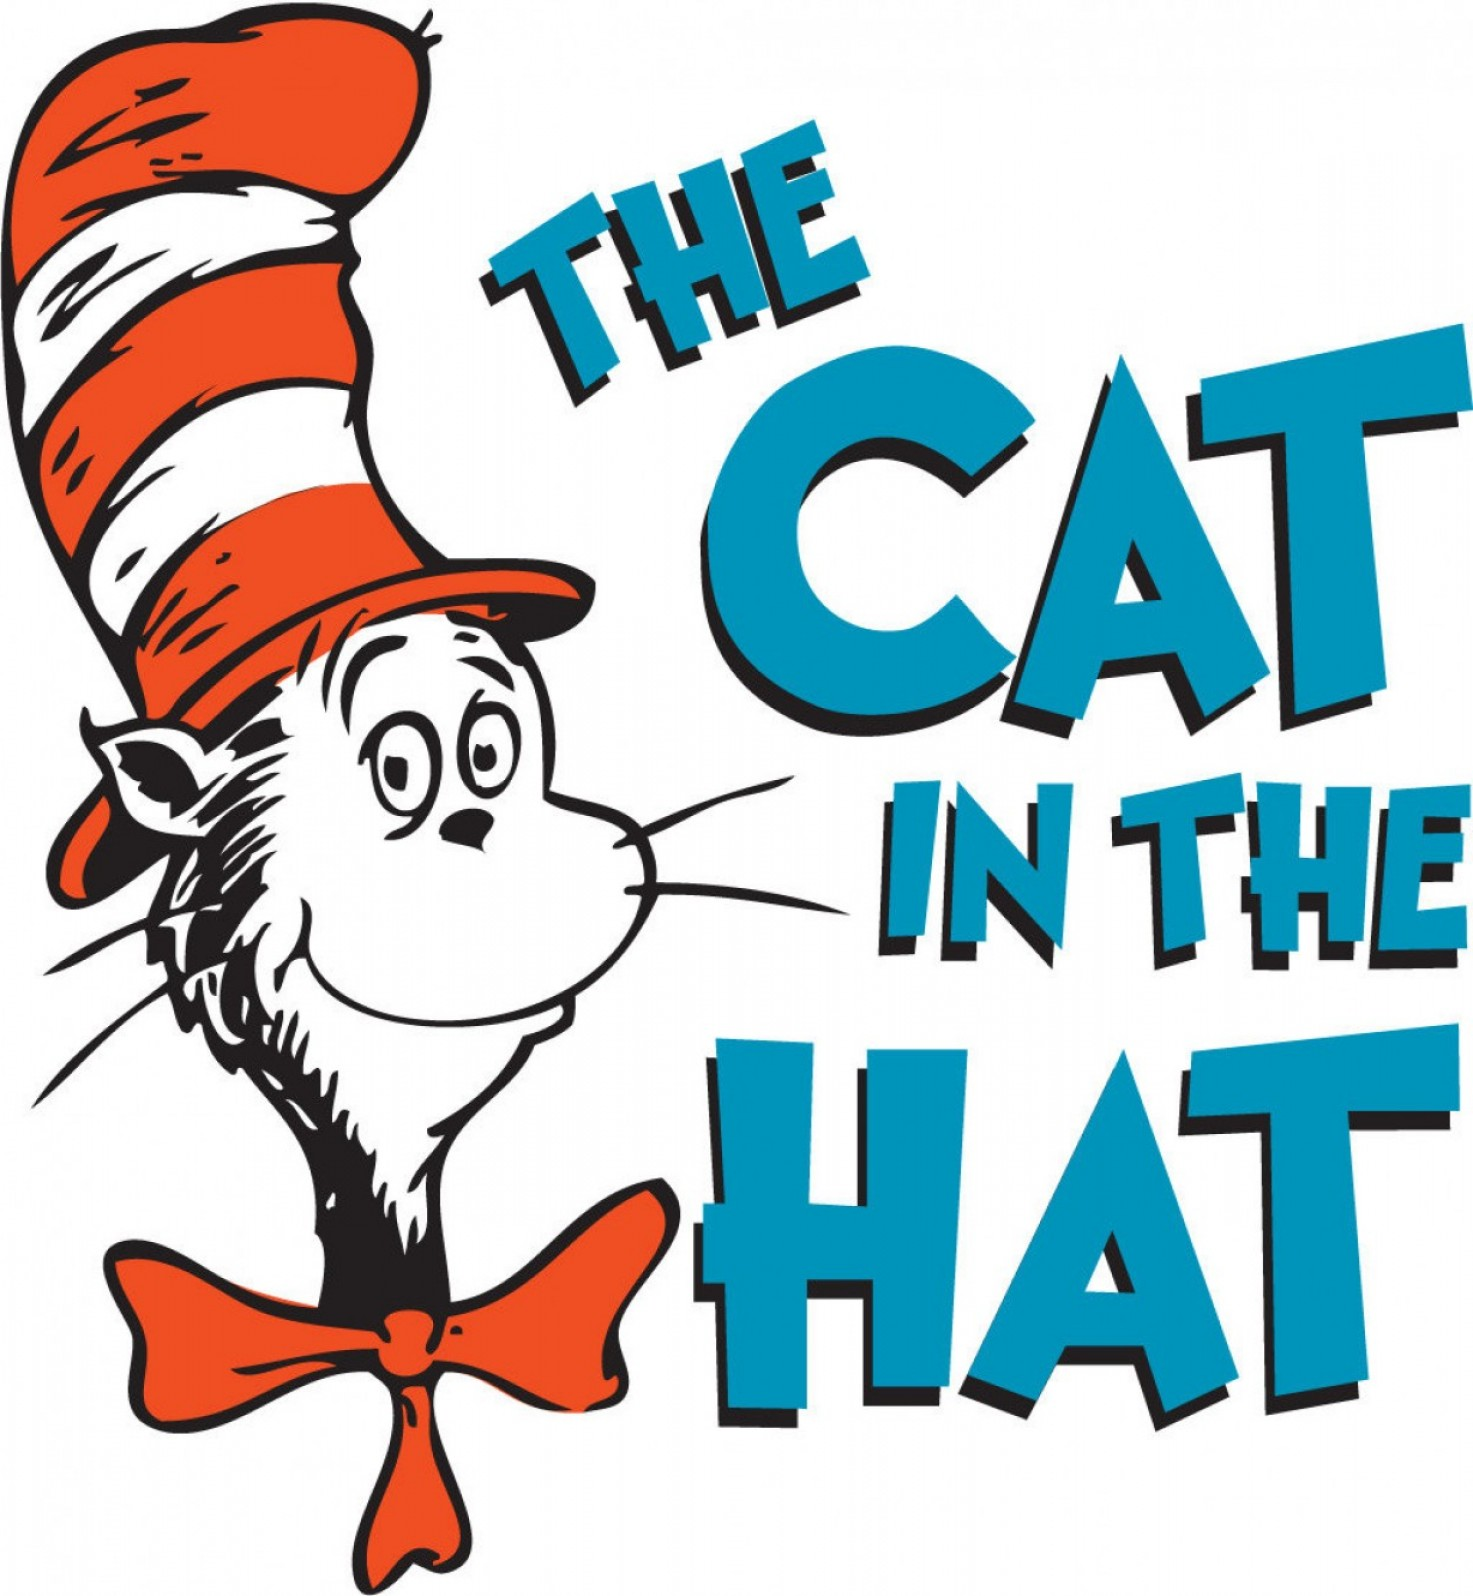 Dr. Seuss Hat Vector: Cat In The Hat Clipart Dr Seuss Characters Clipart Free Clip Art Images